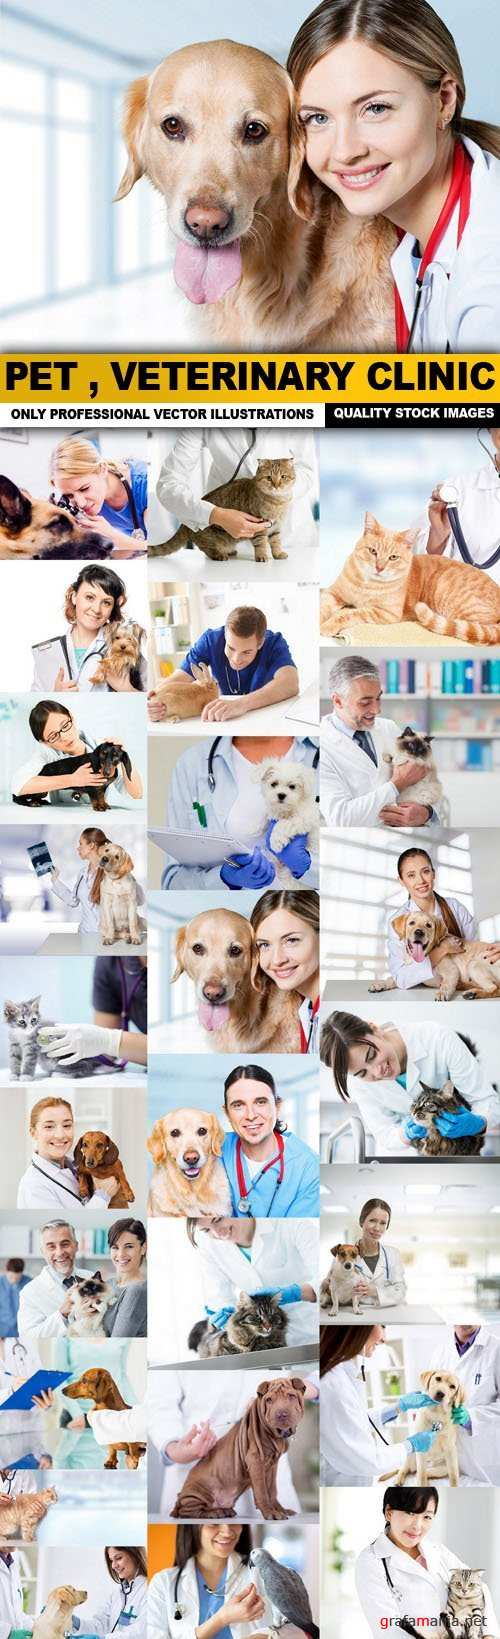 Pet , Veterinary Clinic - 25 HQ Images